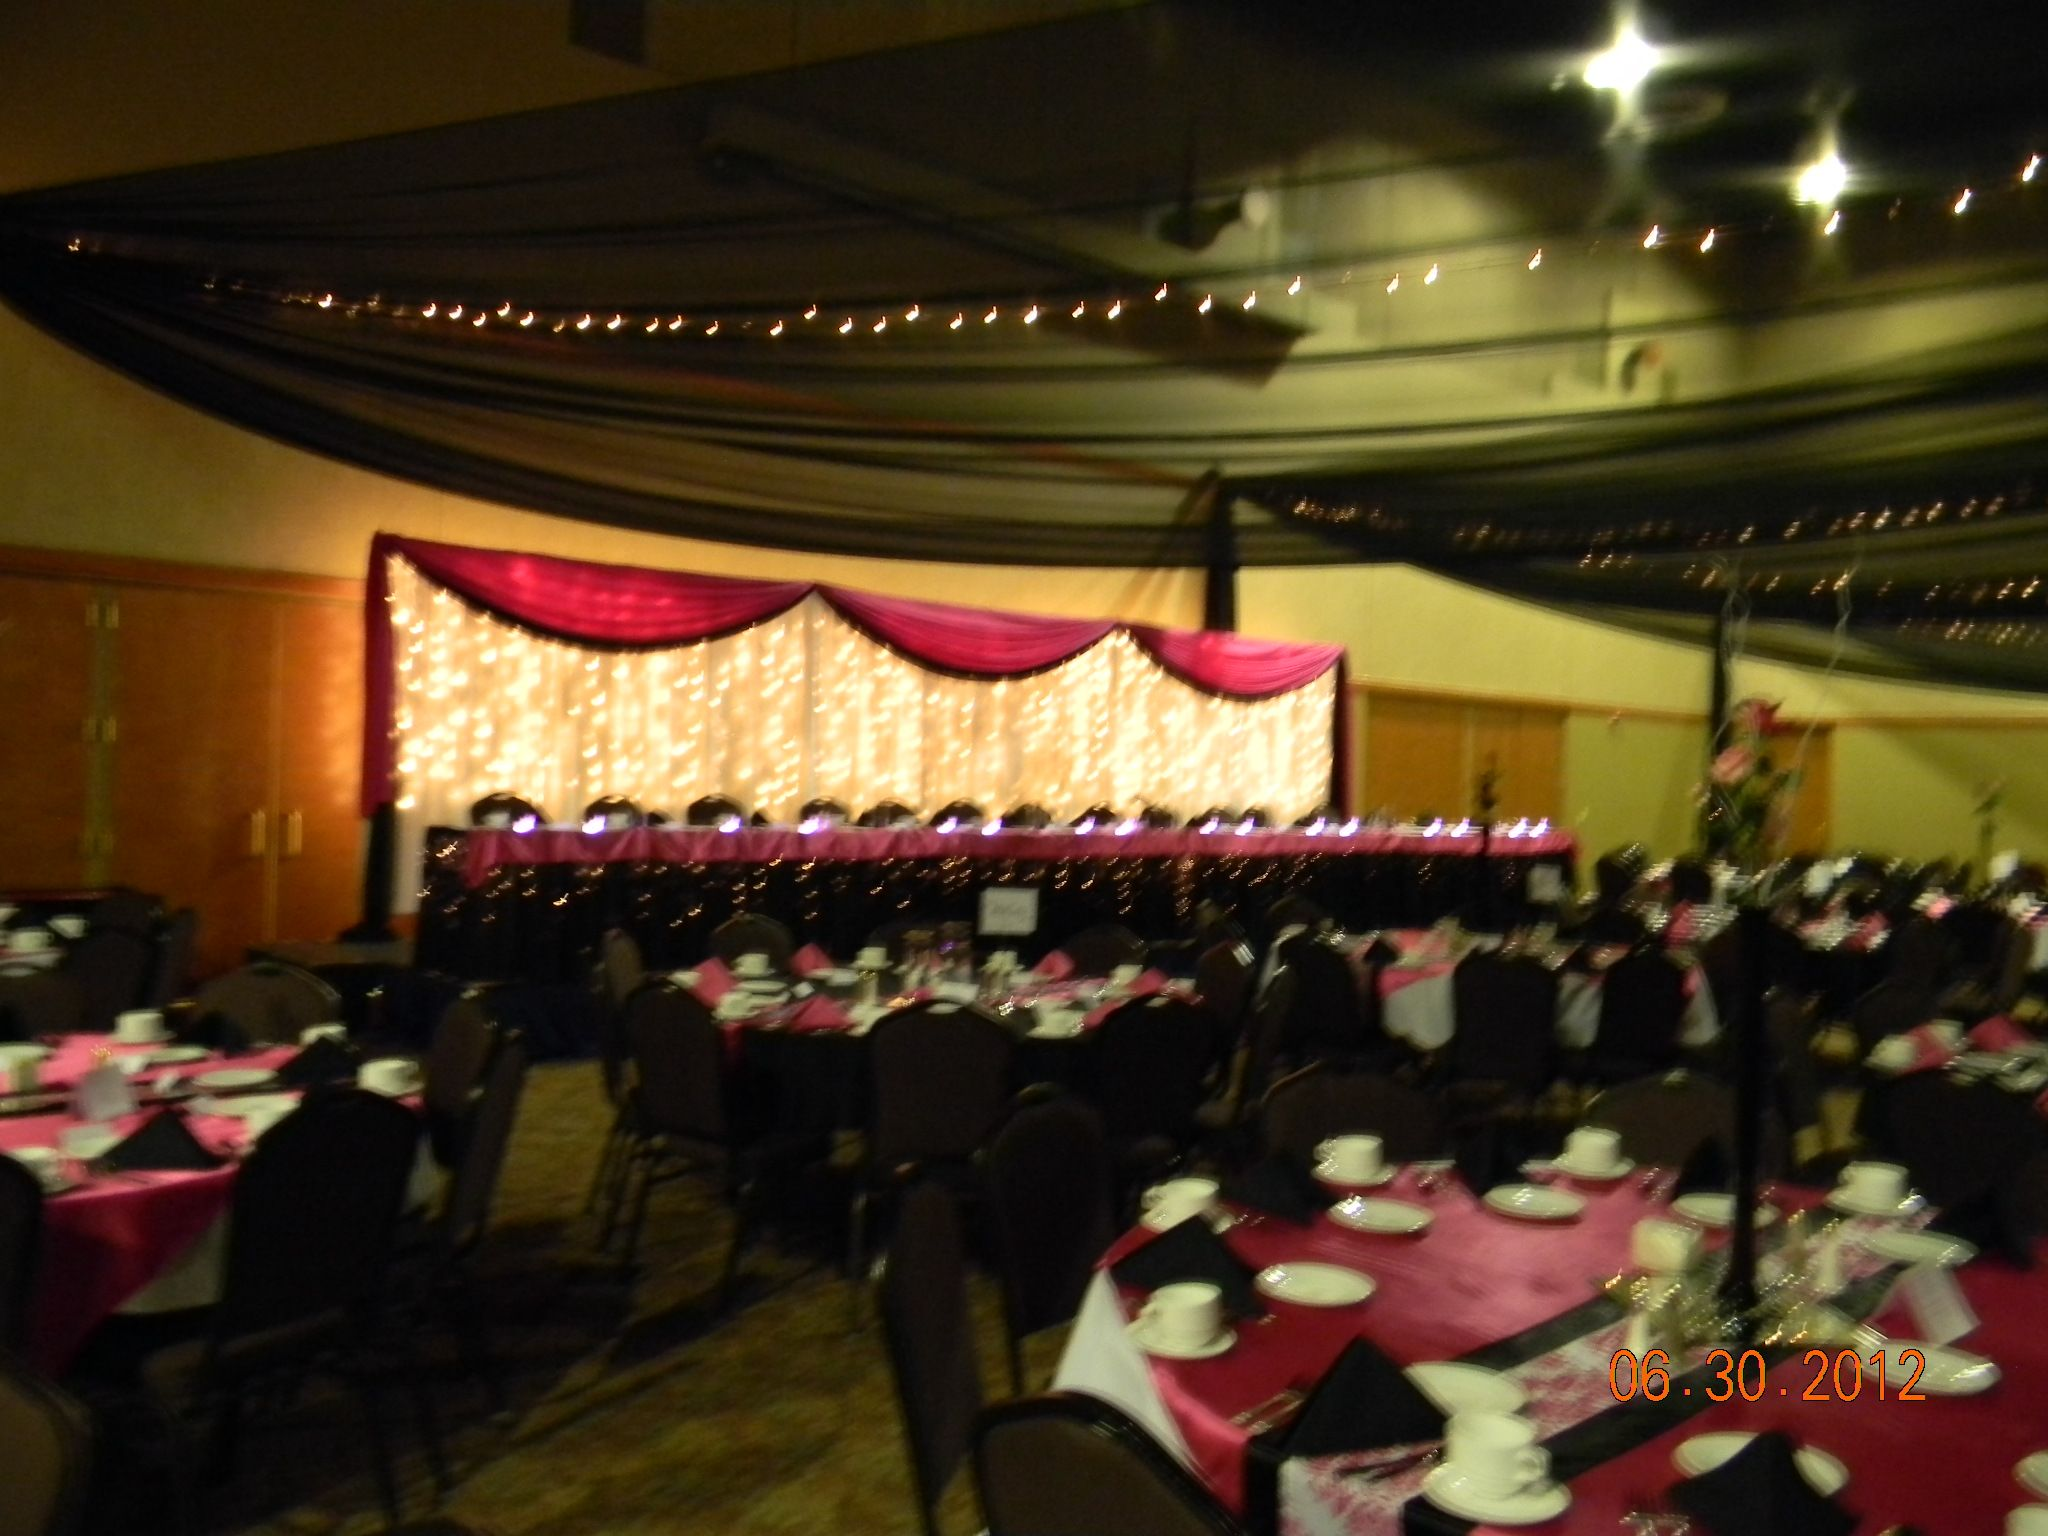 tulum ceilings co rental for weddings floor draping over ceiling smsender dance drapes